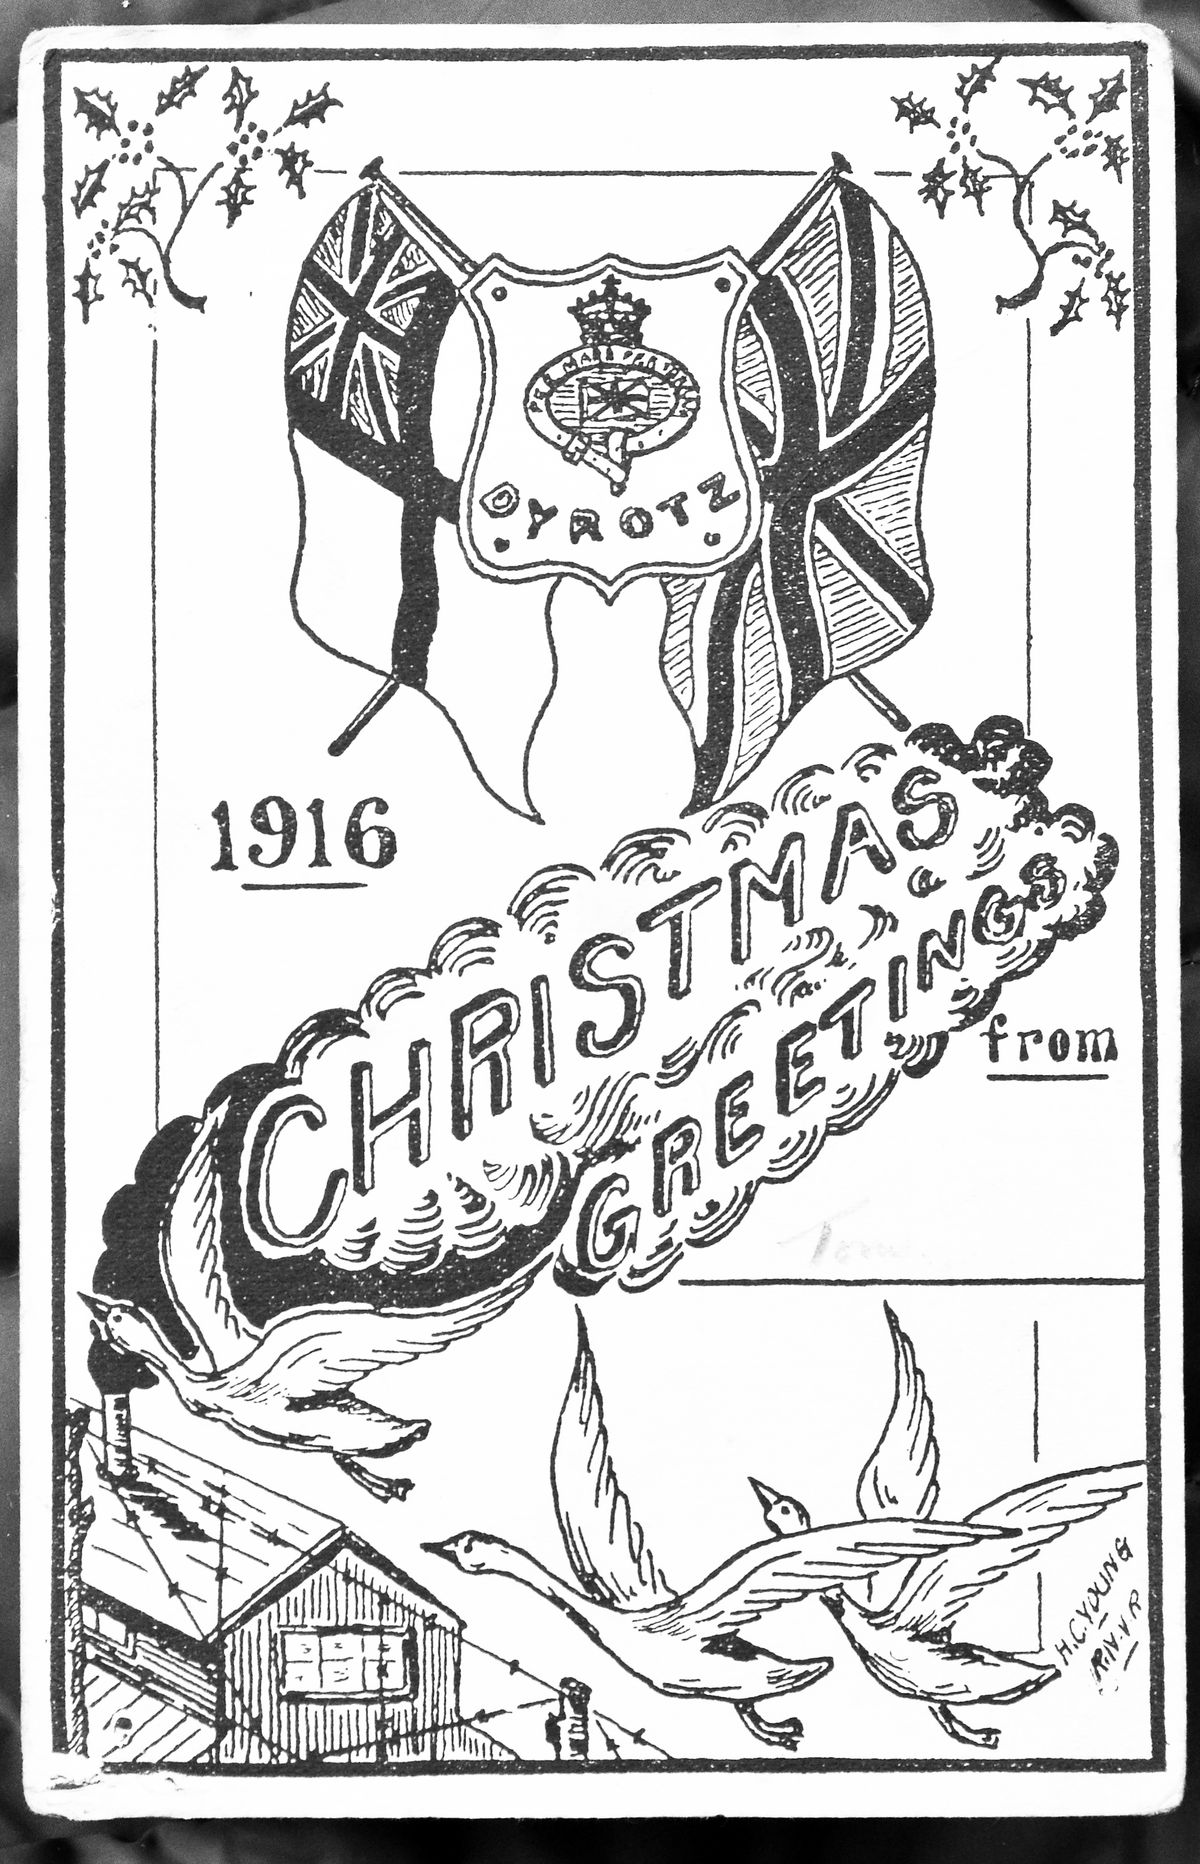 A Christmas card sent by Tom from Dyrotz prisoner-of-war camp in 1916.